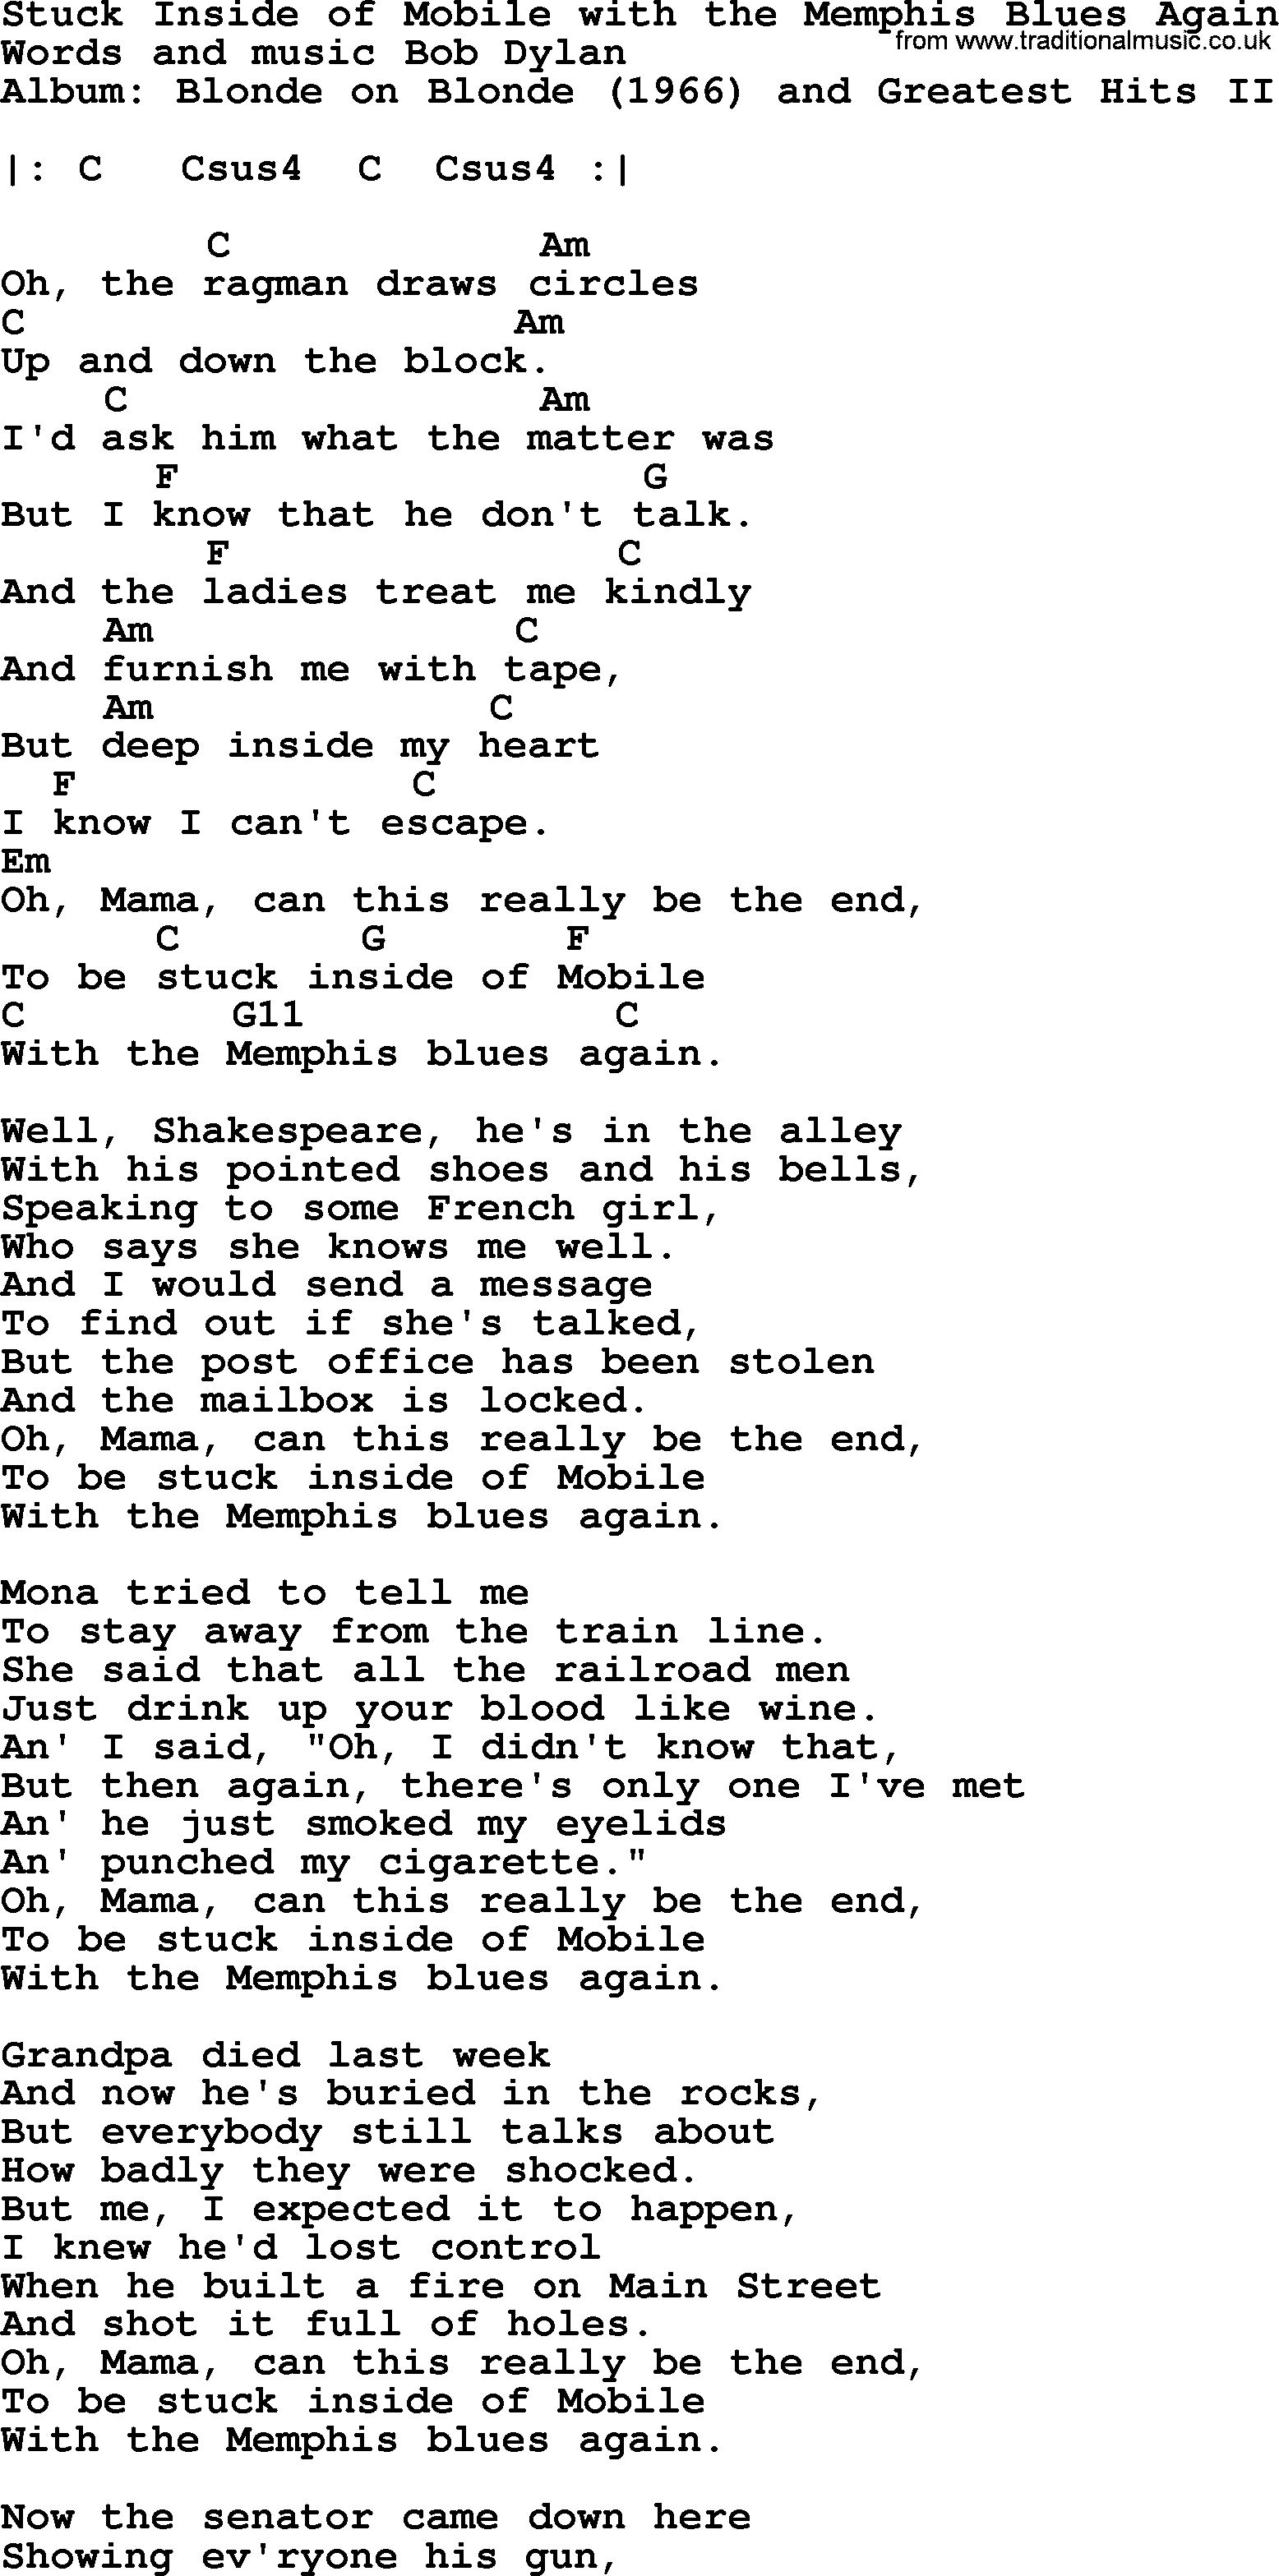 From The Inside Out Chords Bob Dylan Song Stuck Inside Of Mobile With The Memphis Blues Again